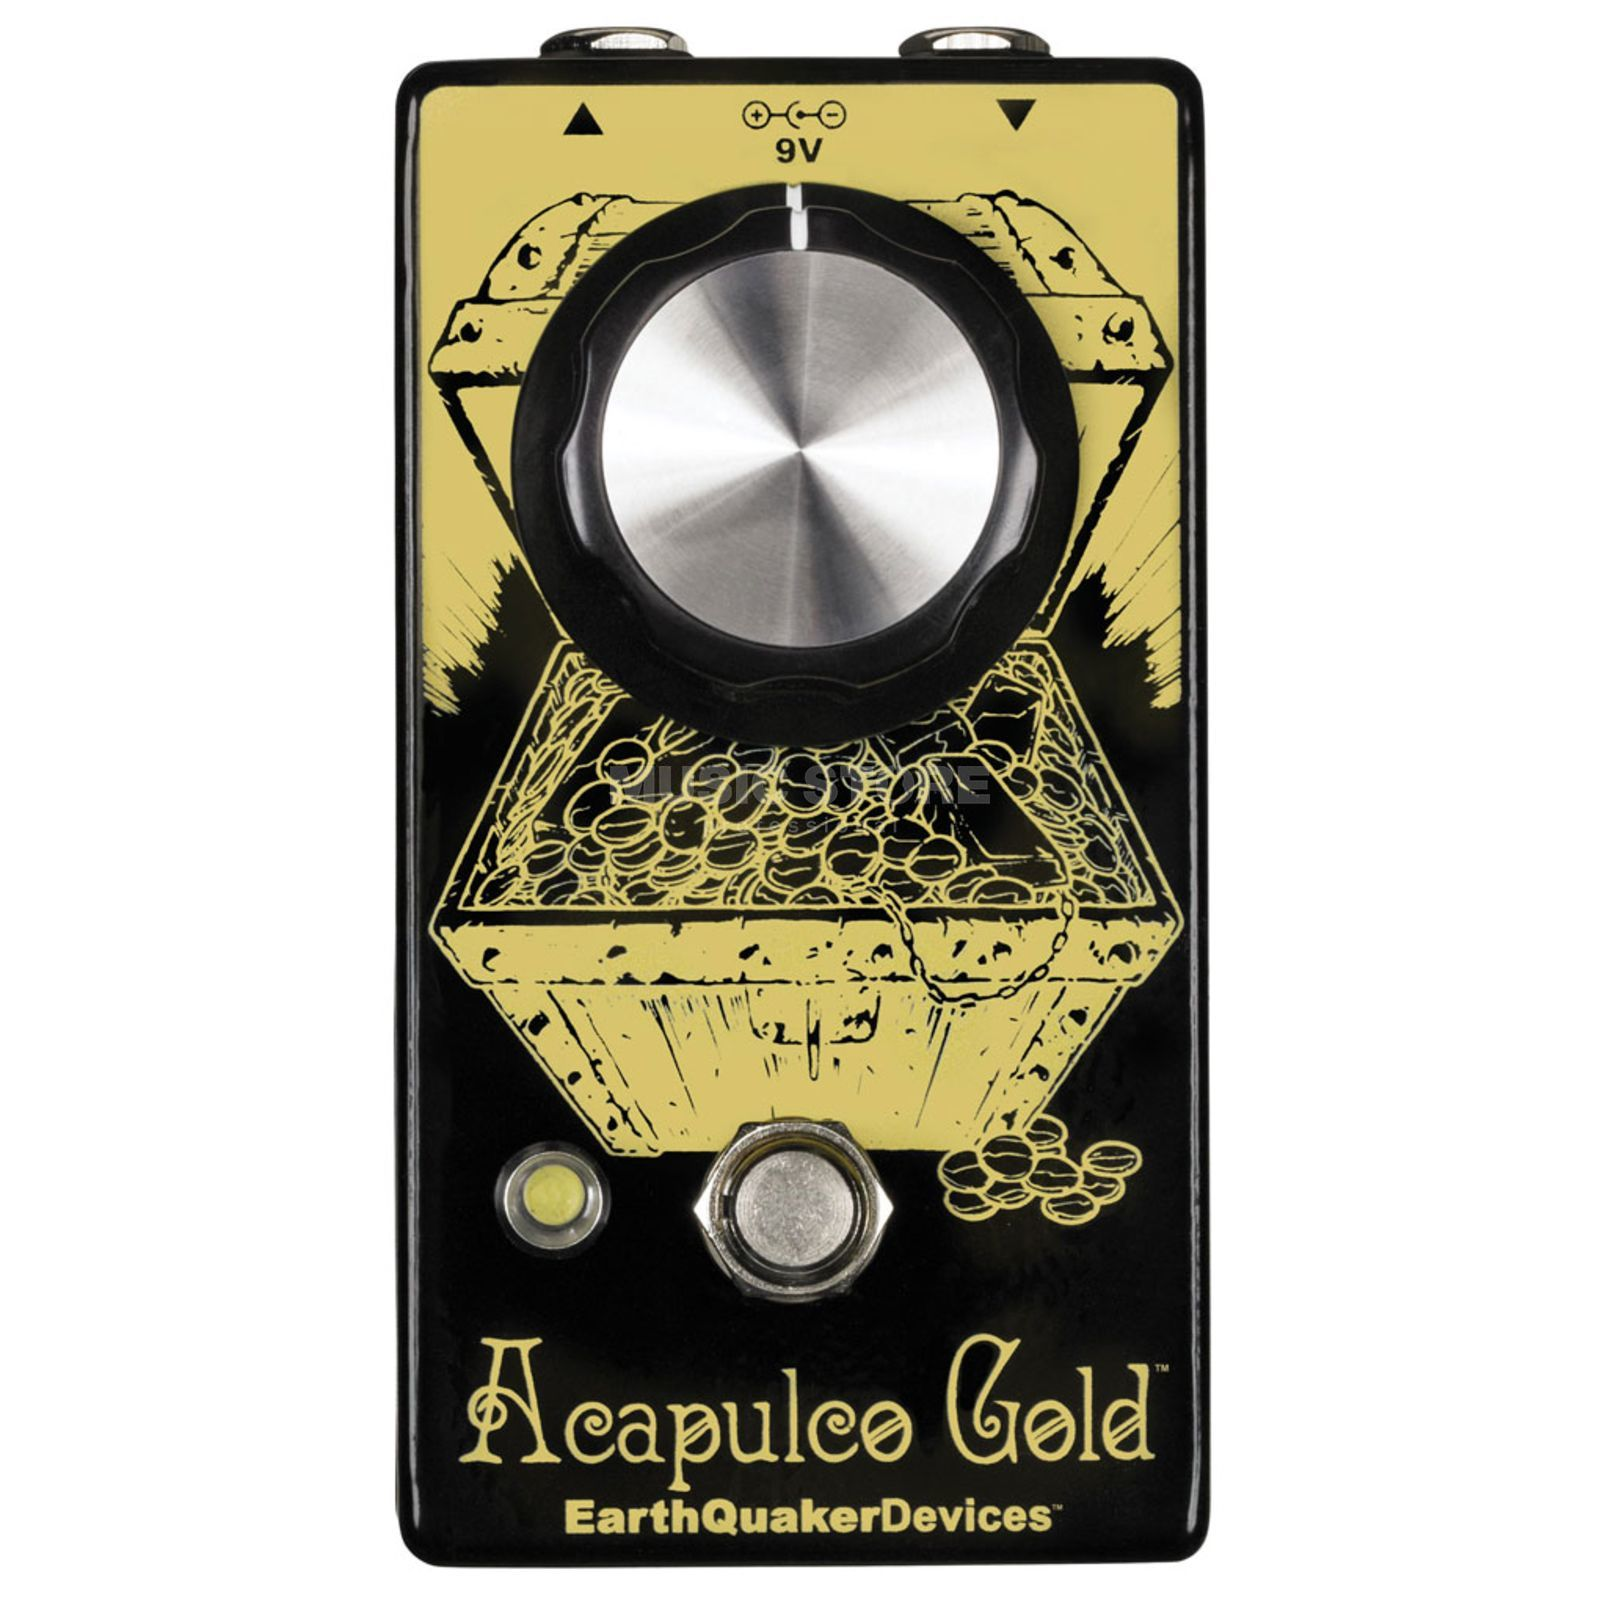 Earthquaker Devices Acapulco Gold V2 Product Image